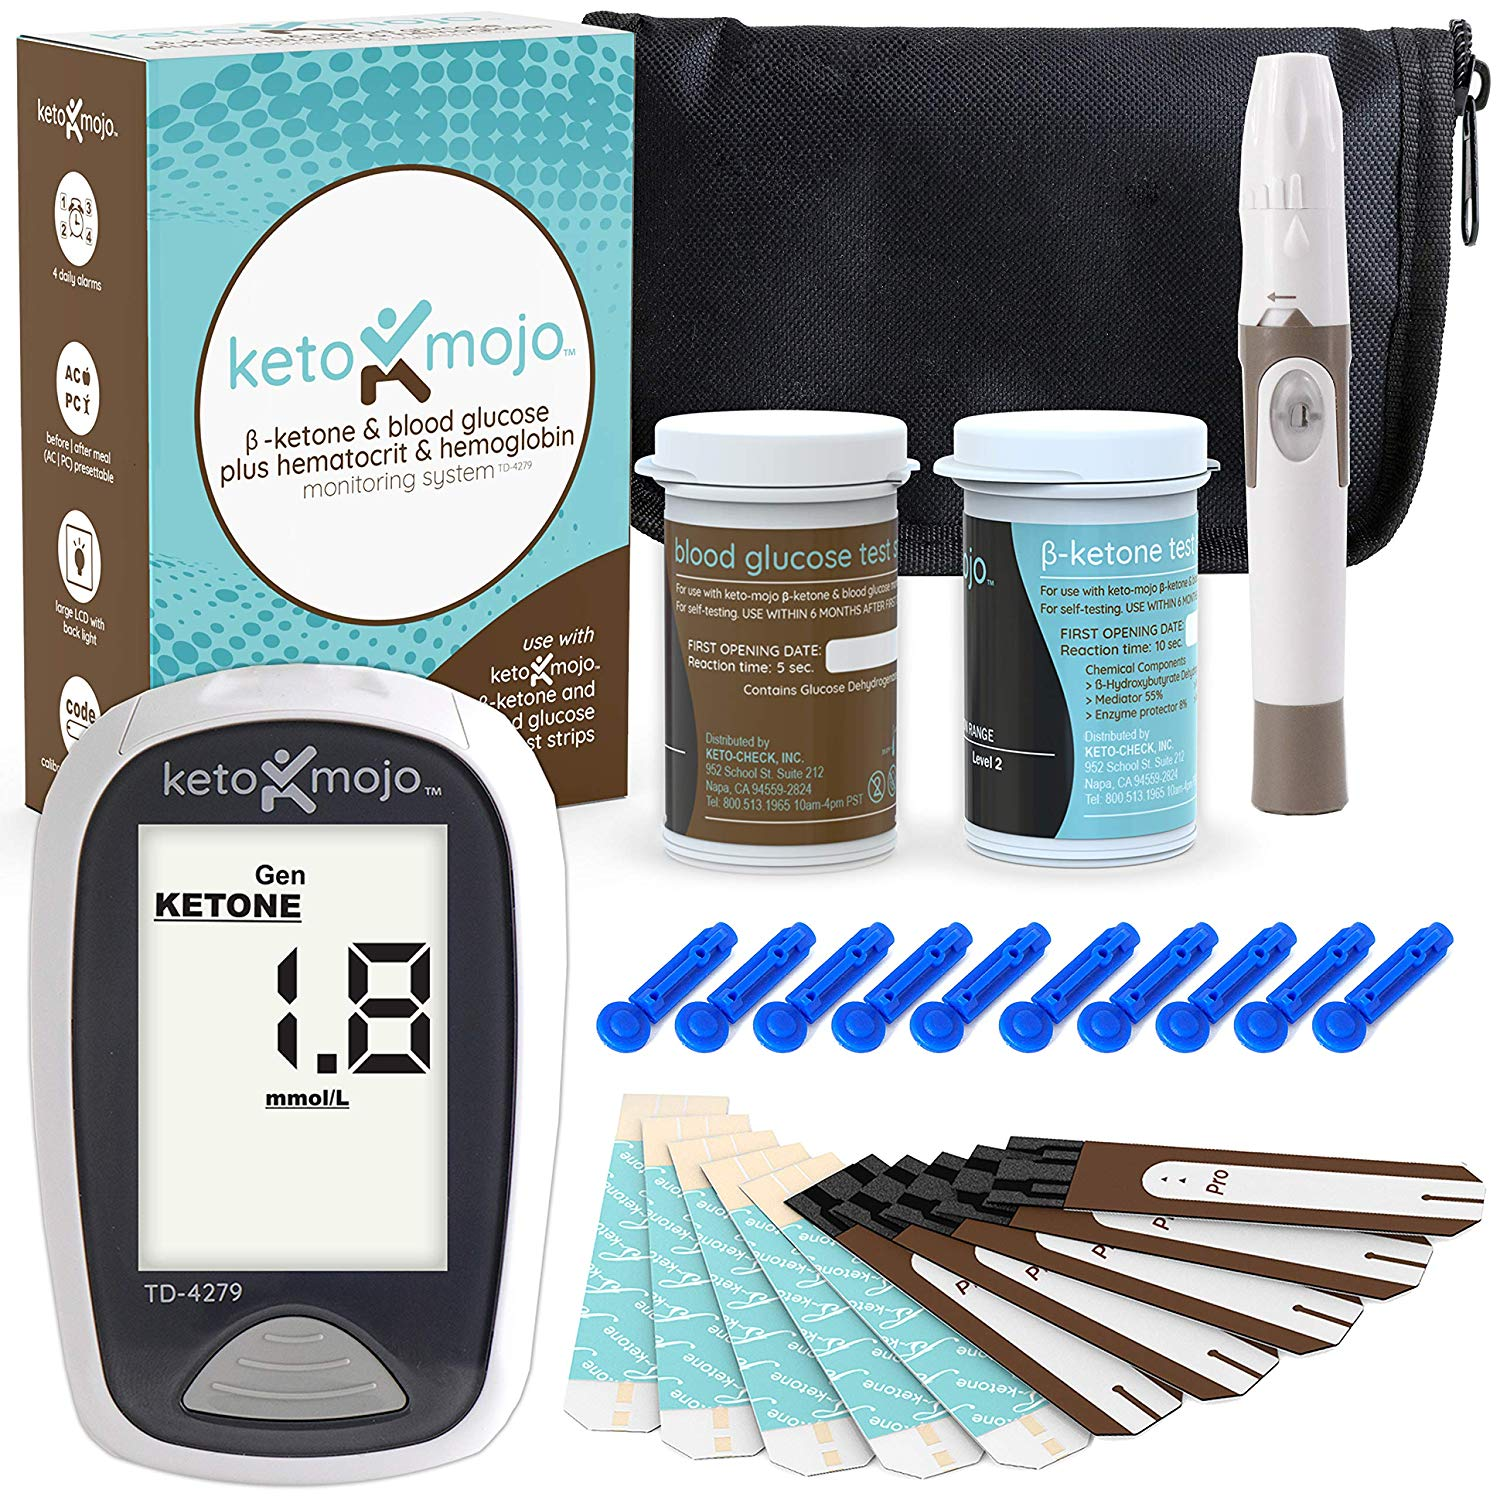 Review of KETO-MOJO Blood Ketone and Glucose Testing Kit, Monitor Your Ketogenic Diet